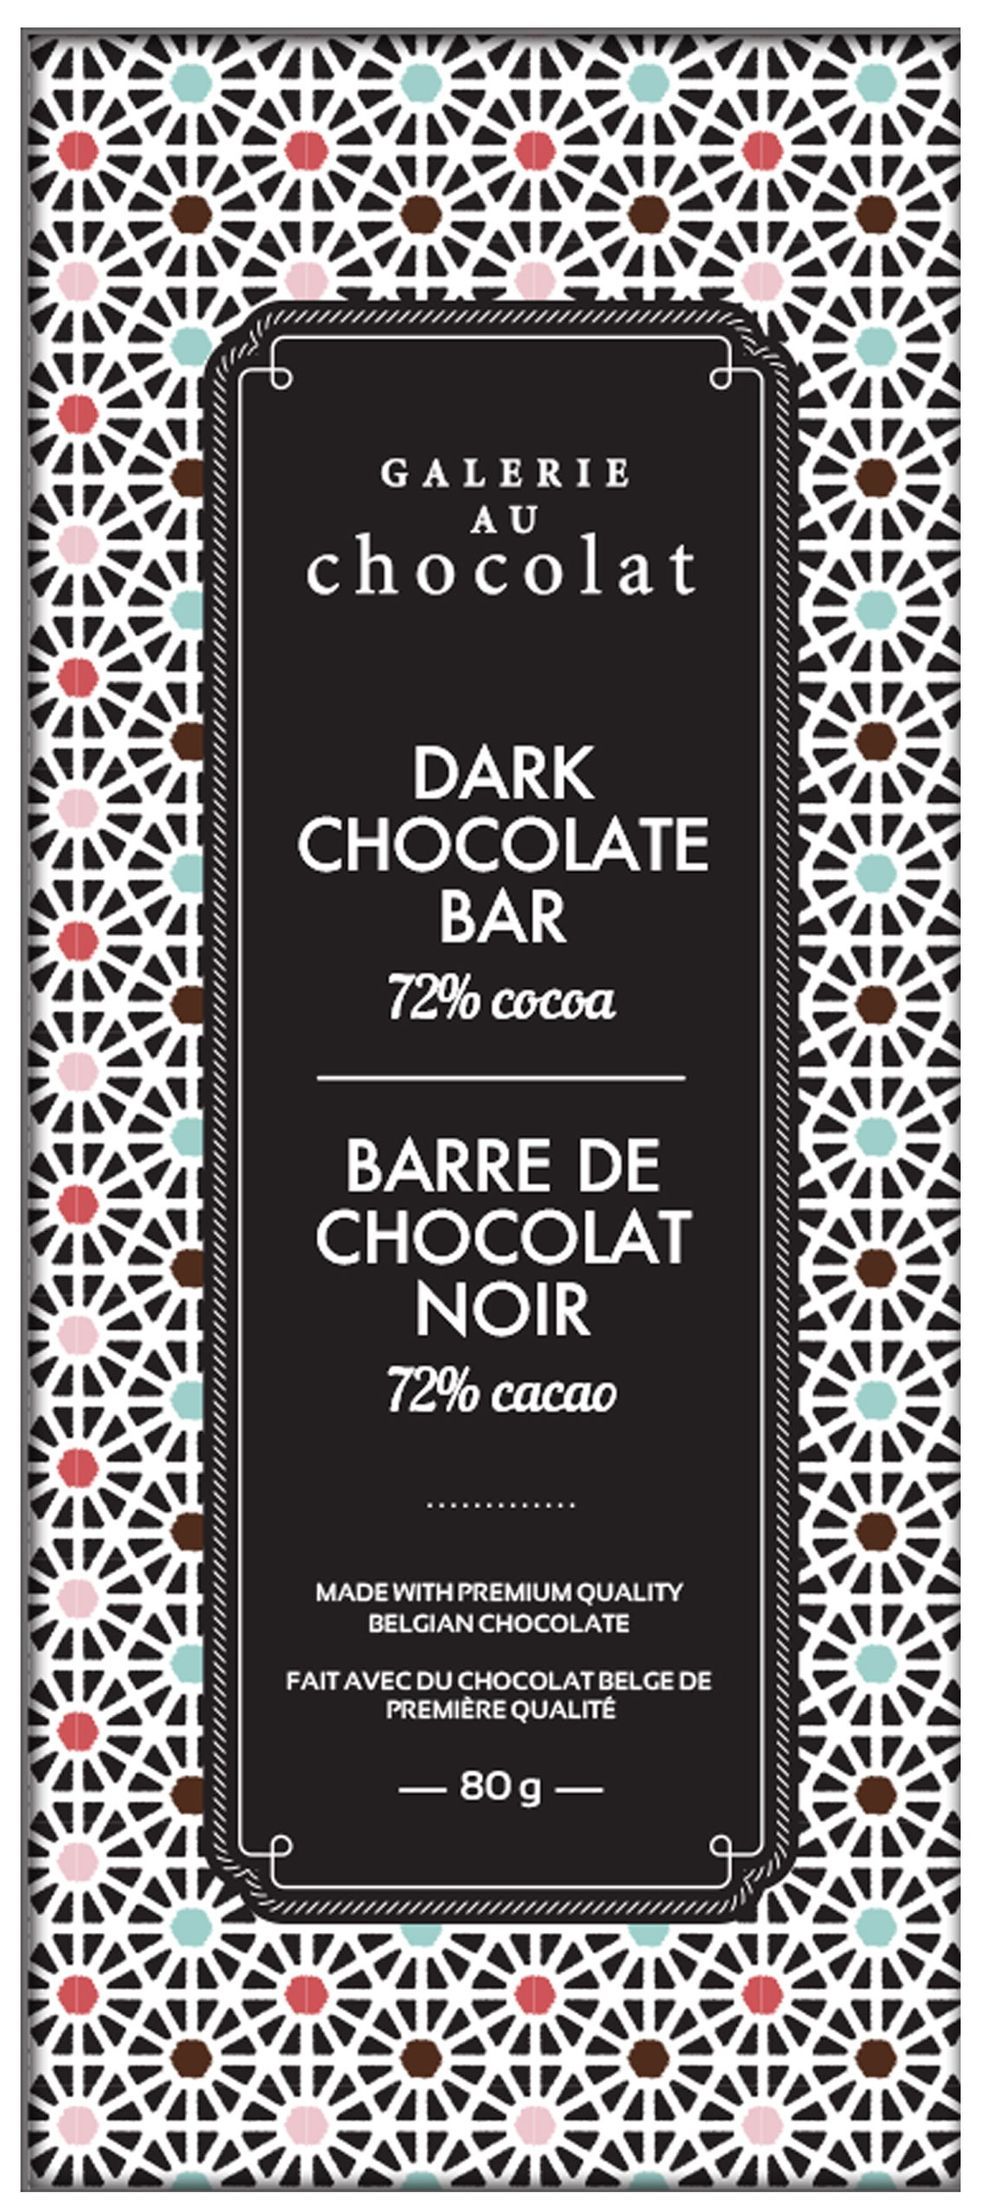 Dark Chocolate 72% Cacao Bar